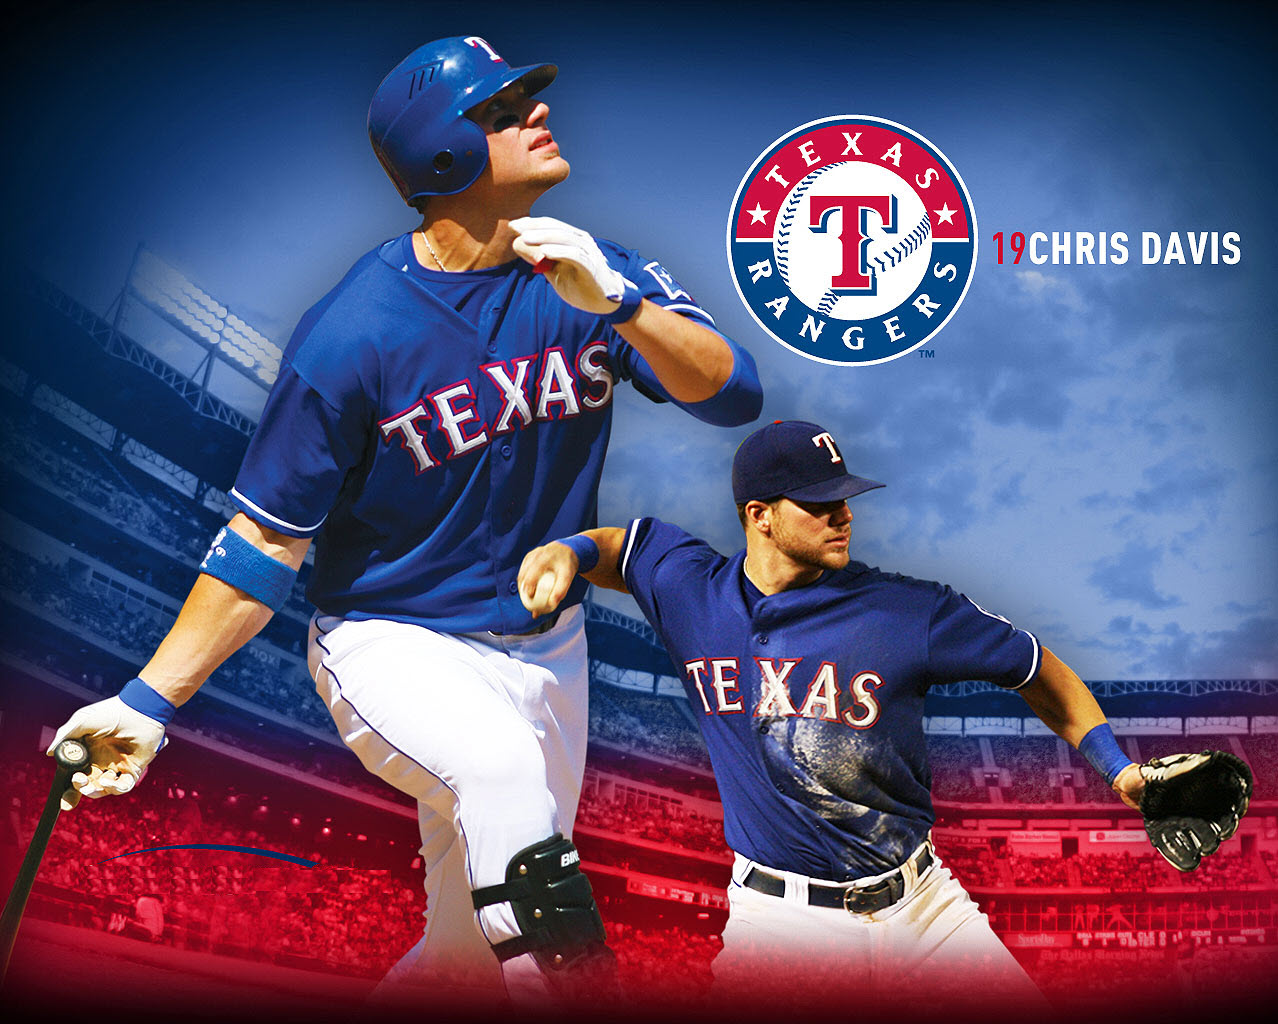 free texas rangers wallpapers - wallpapersafari